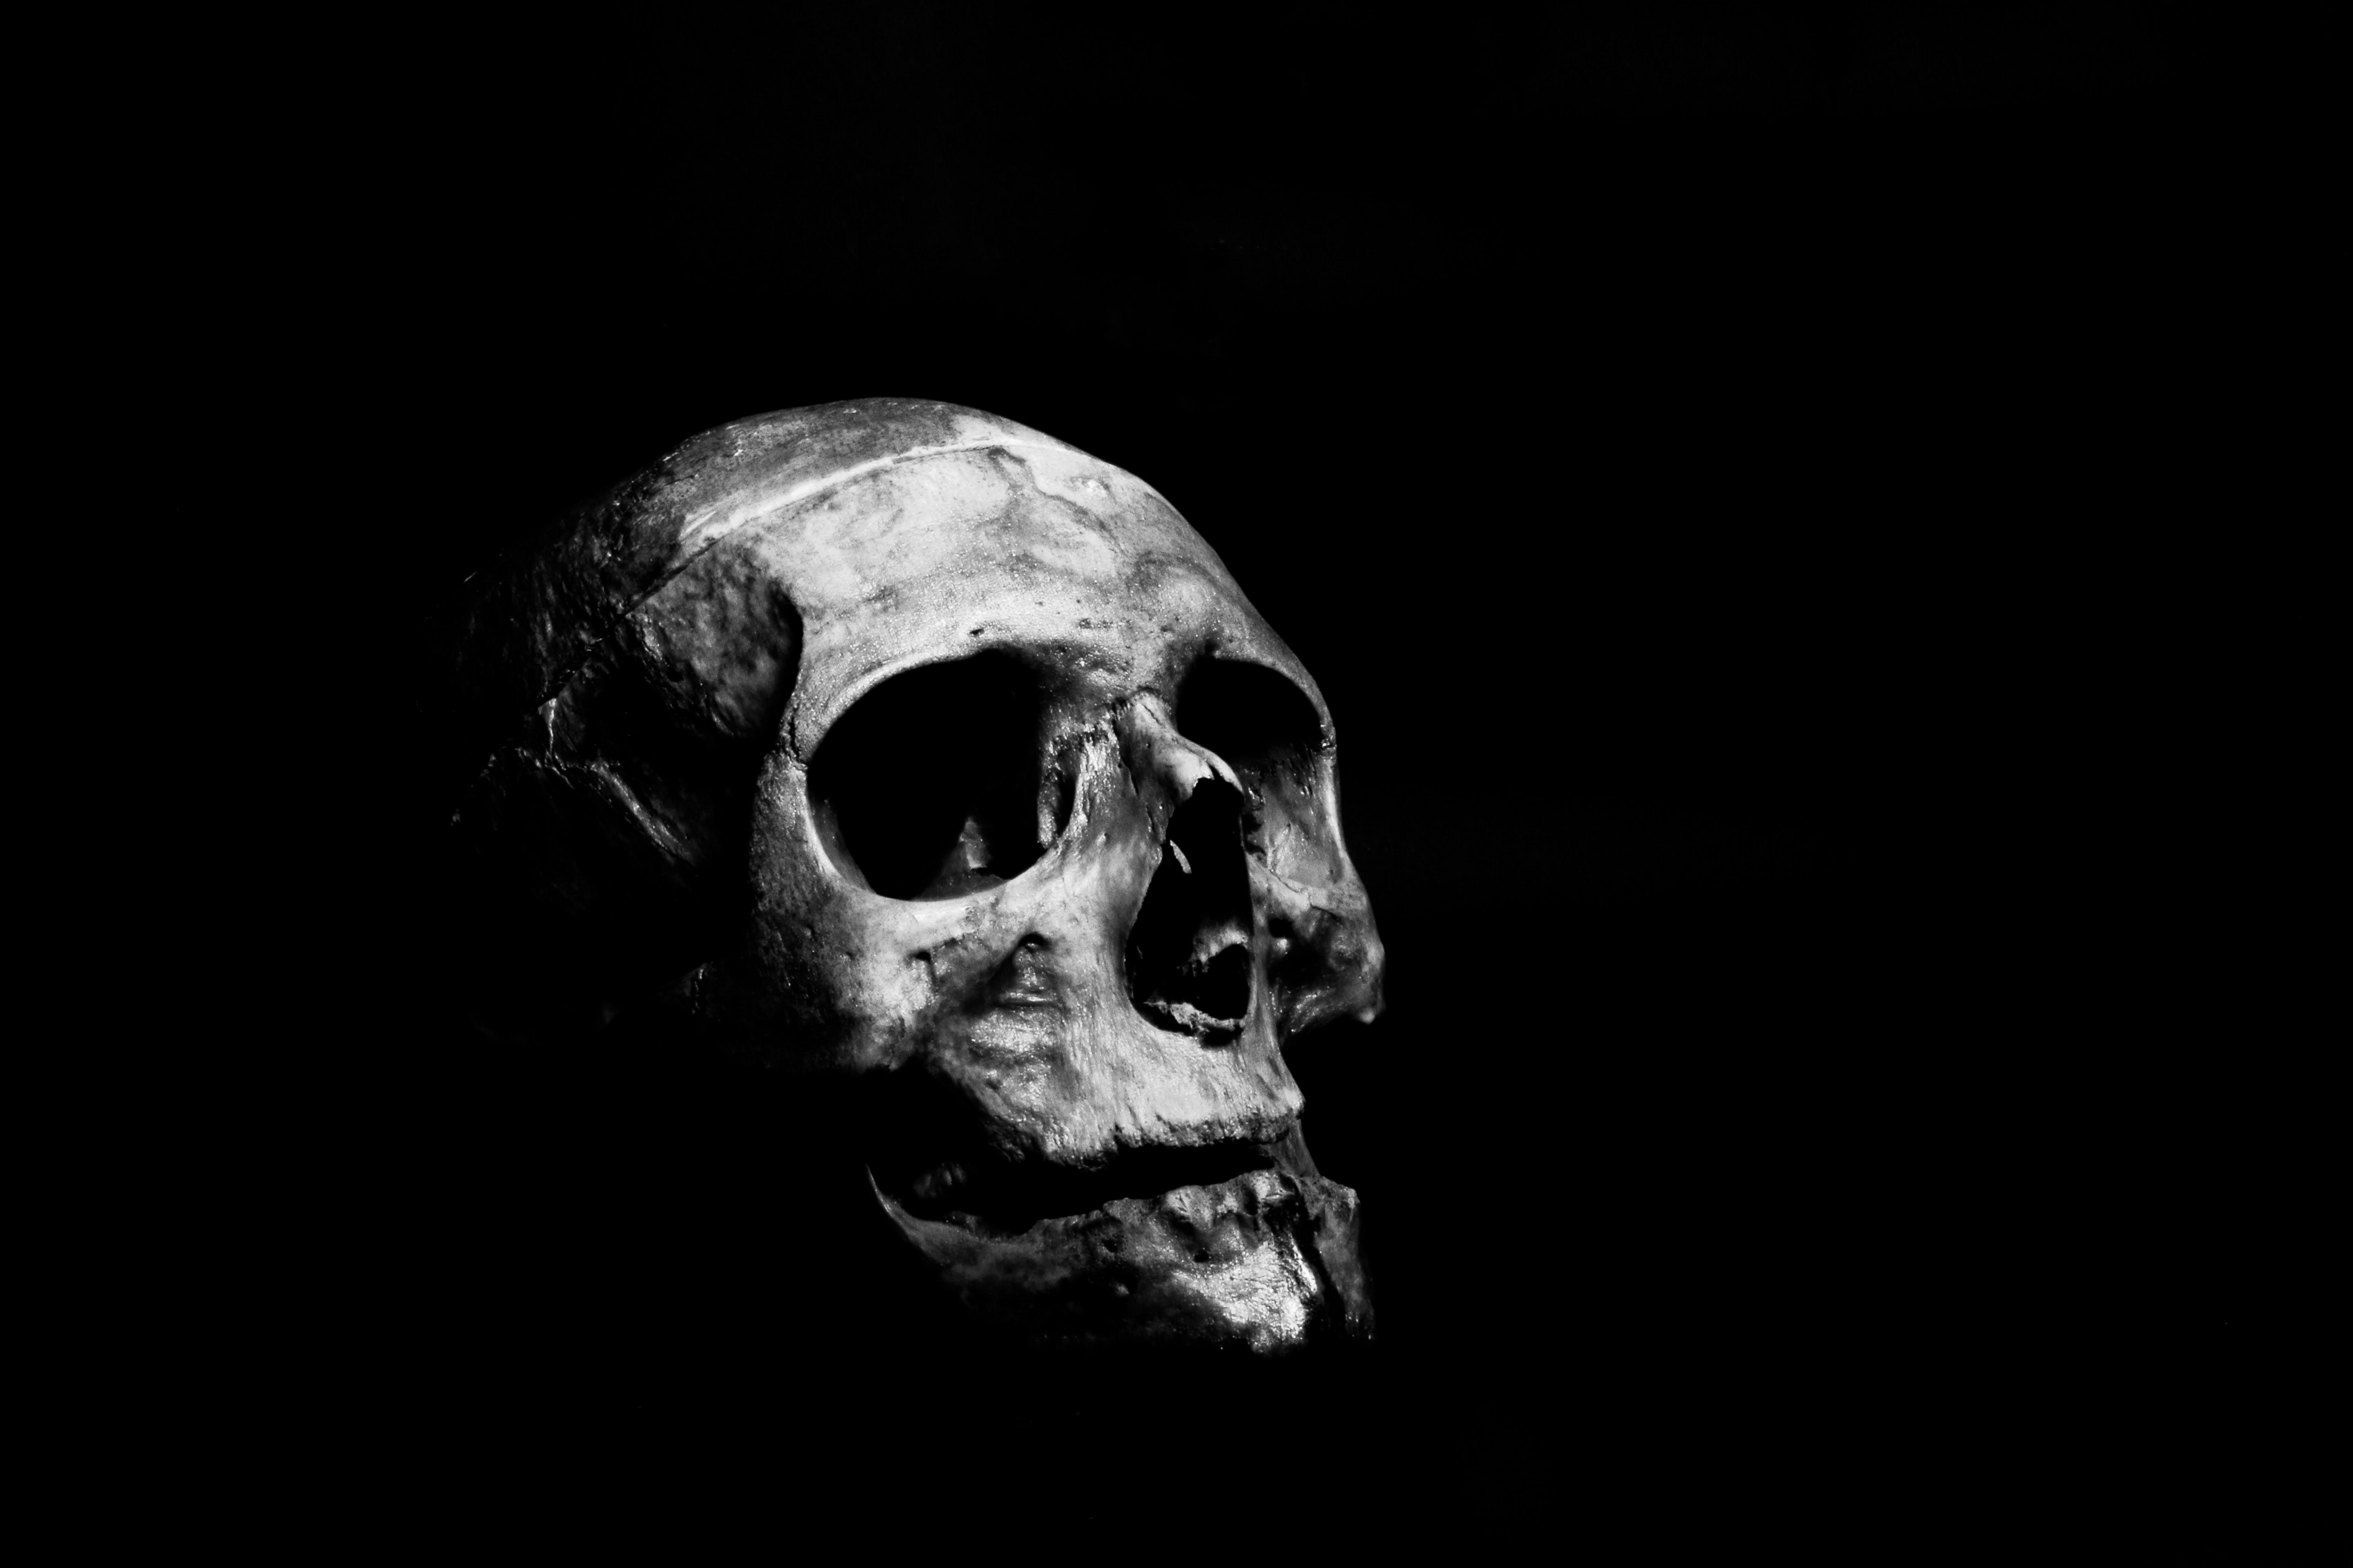 An image of a skull, shown in black and white, with a black background.